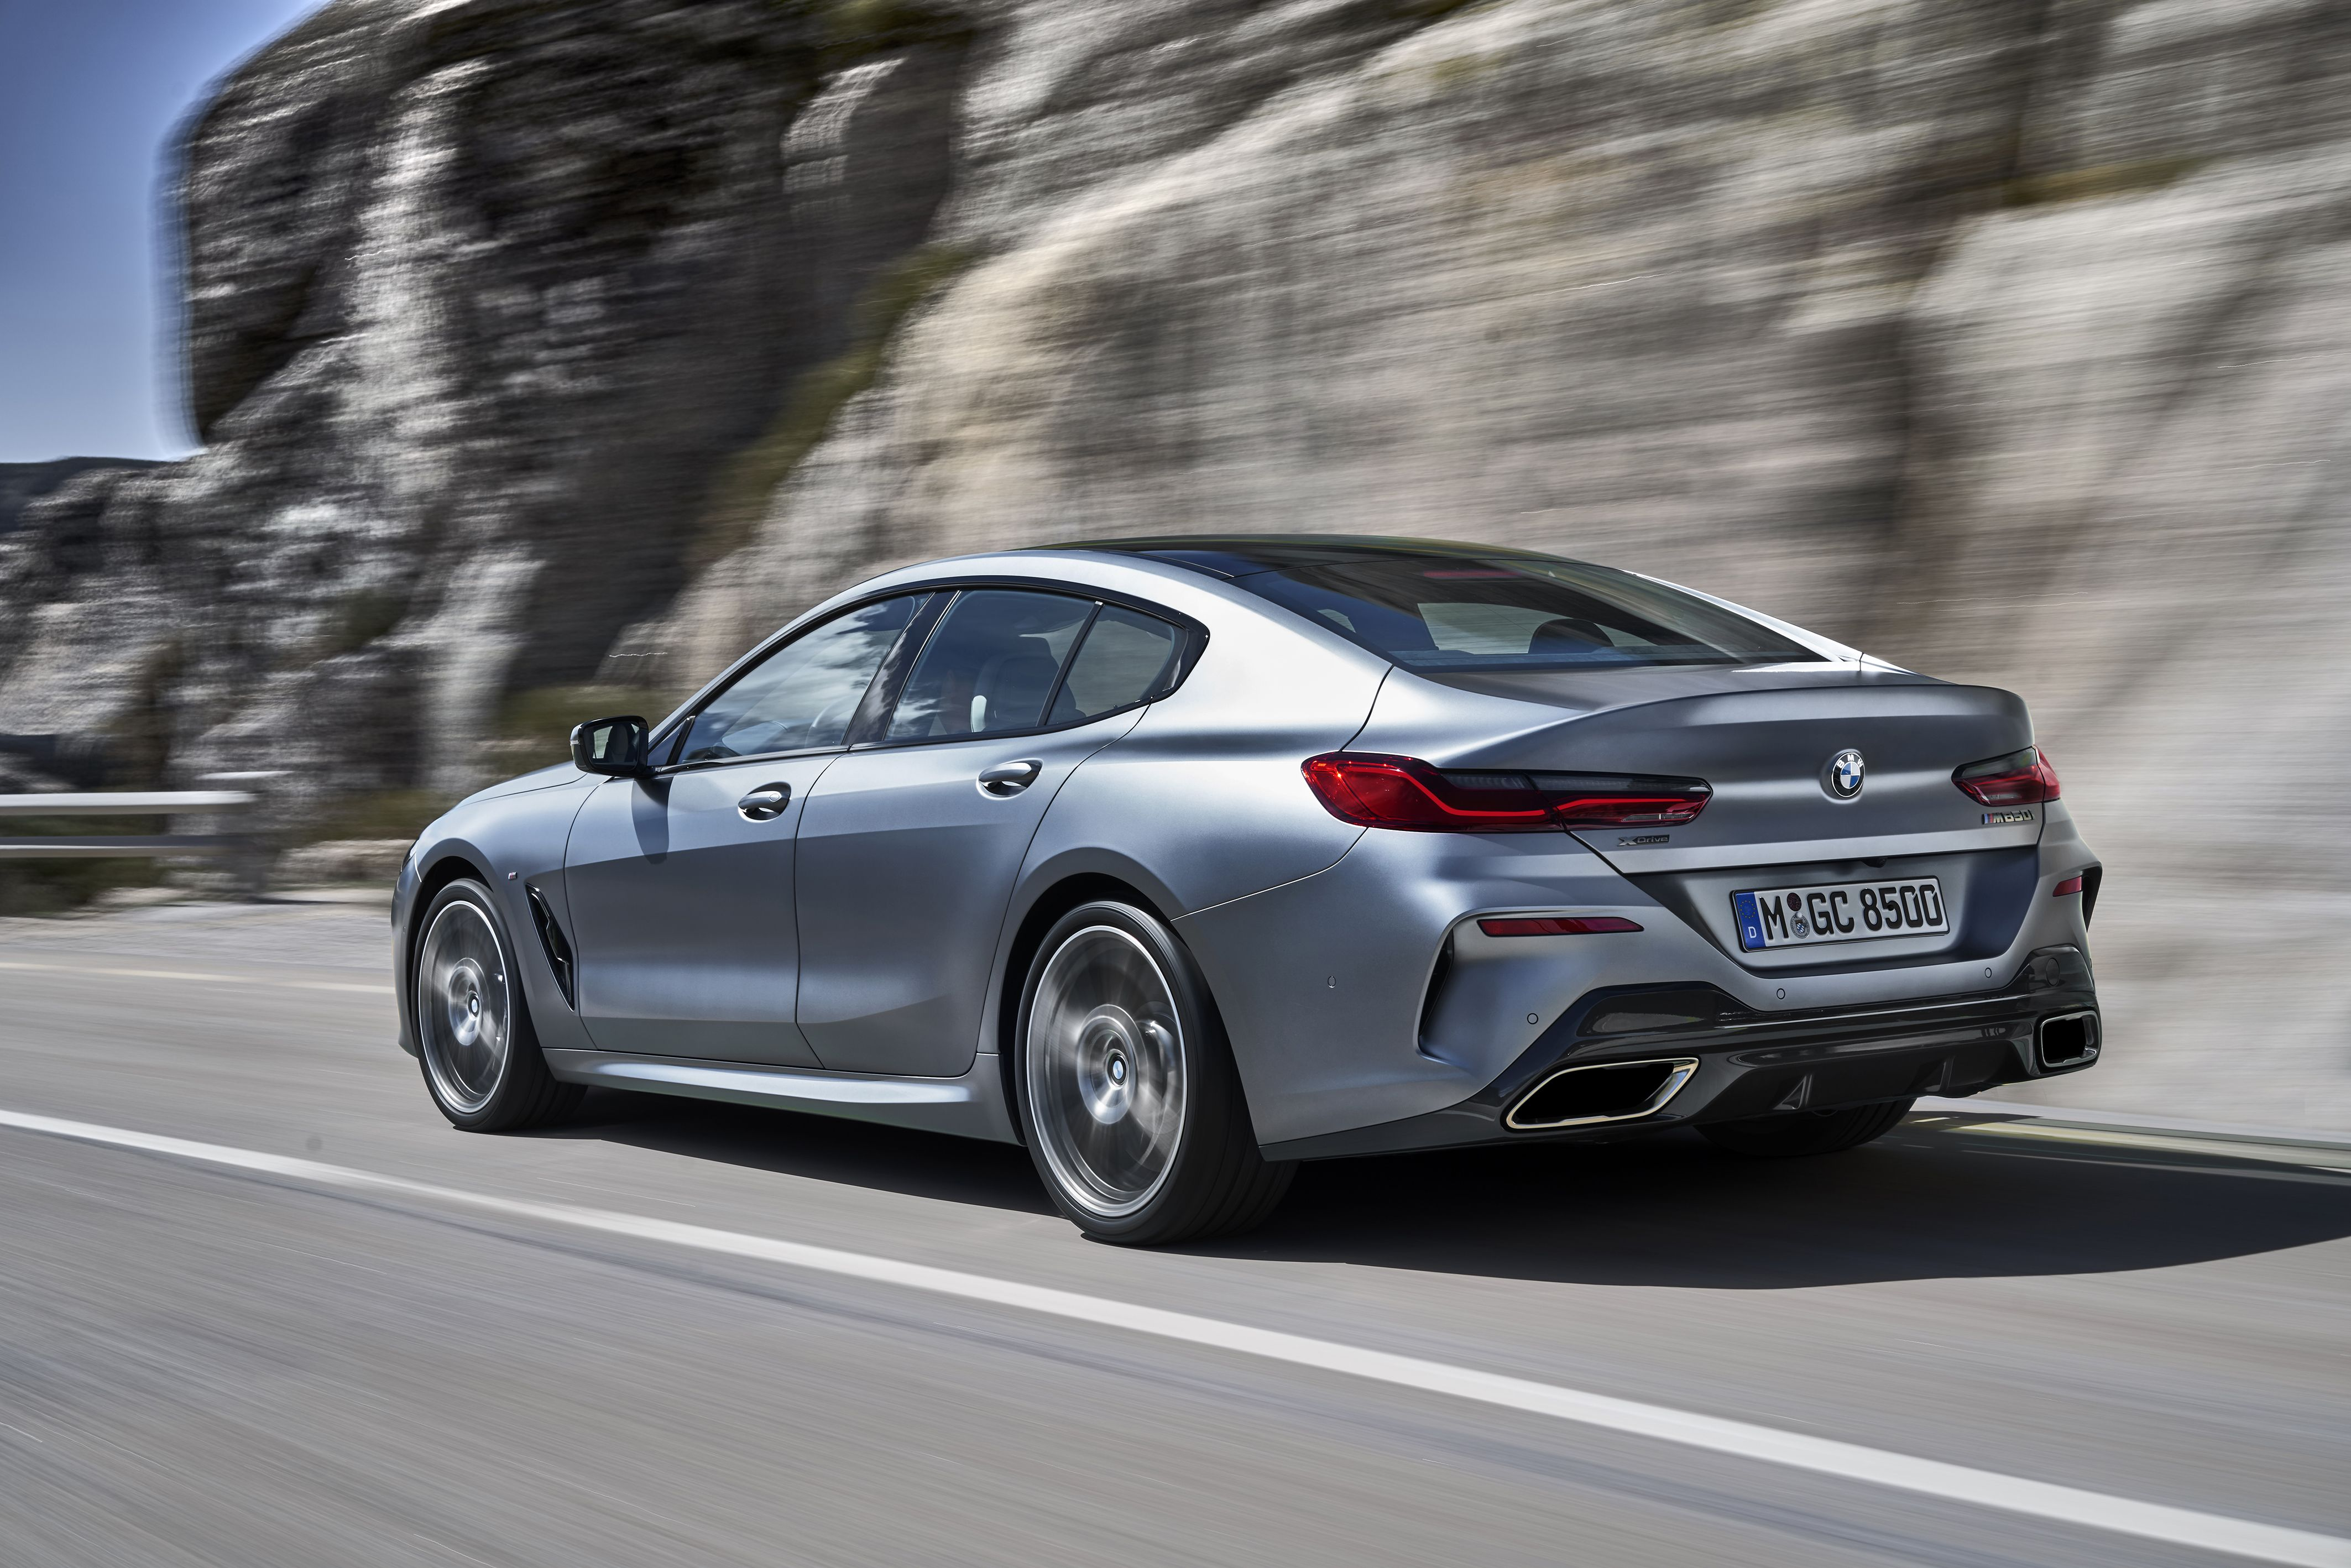 2020 Bmw 8 Series Gran Coupe Quirks And Features New Bmw Bmw